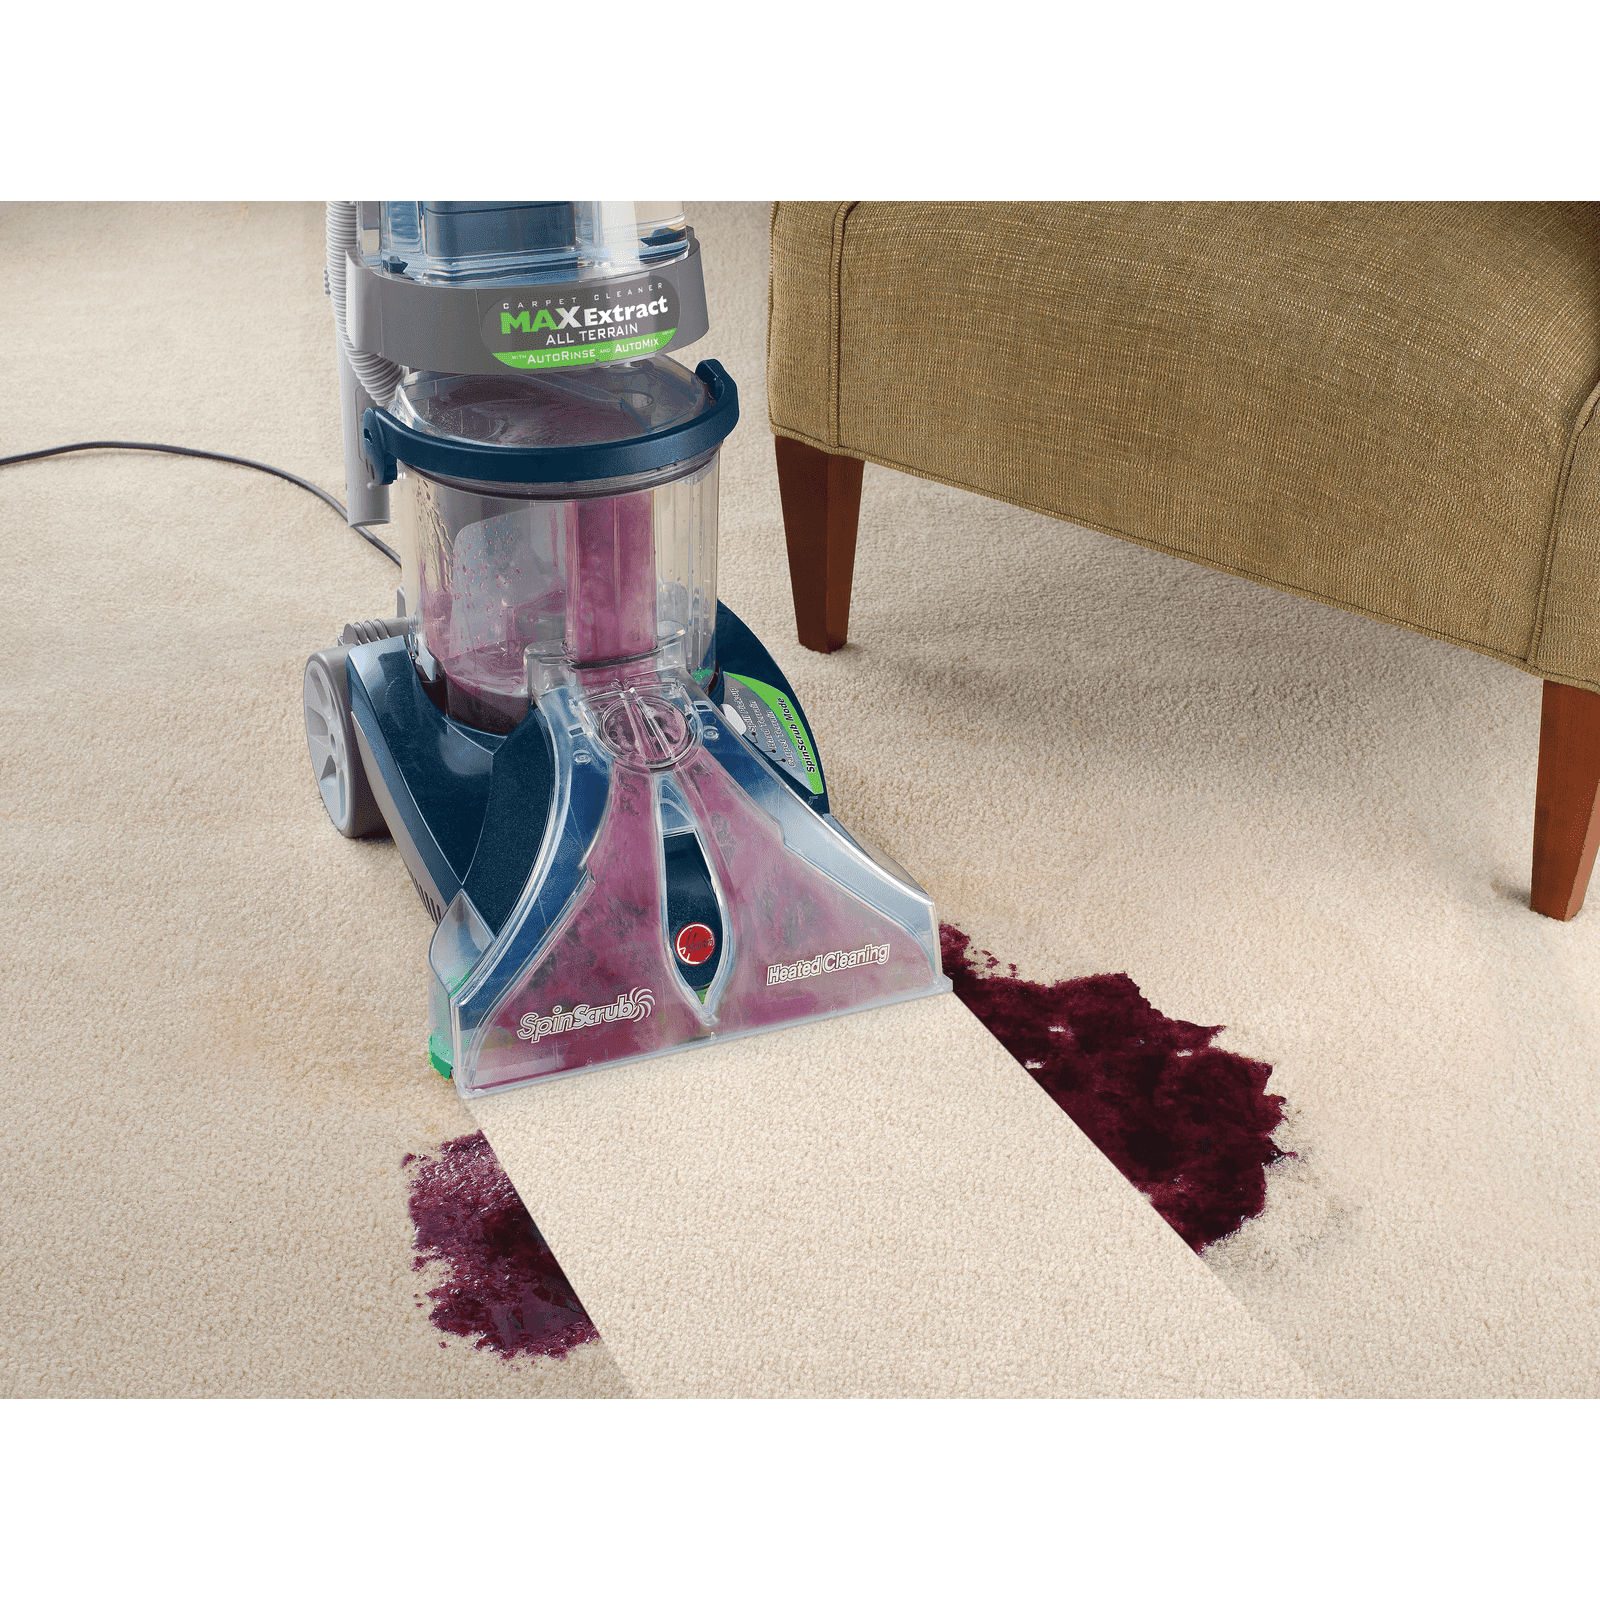 3215a1995a1 Hoover Max Extract All Terrain Carpet Cleaner